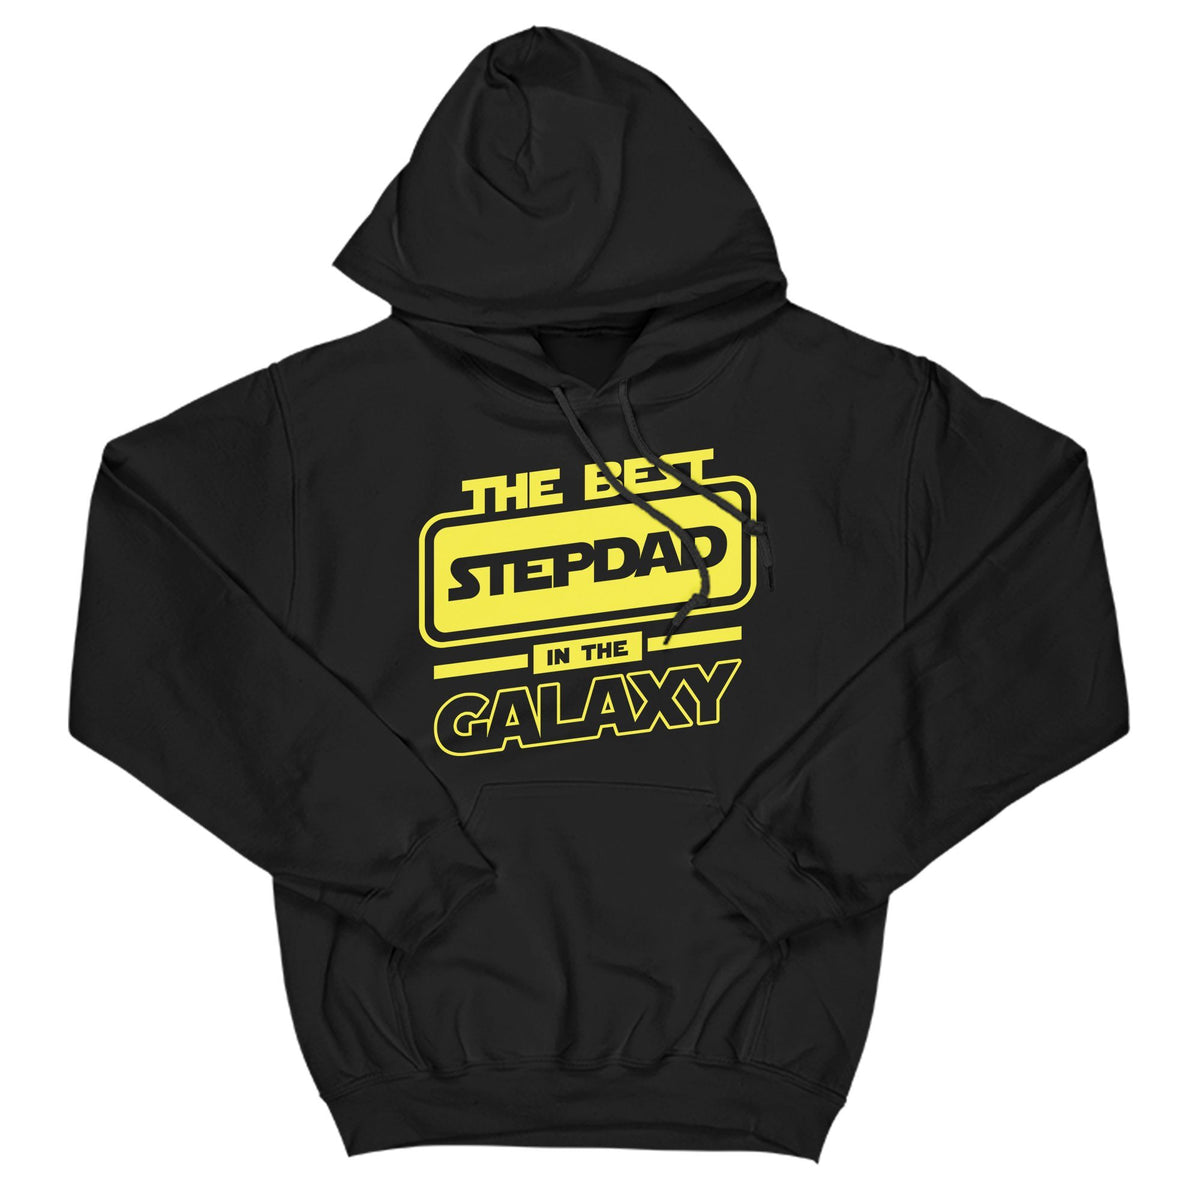 Best Stepdad In The Galaxy Primate Novelty Hoodie Adults: S